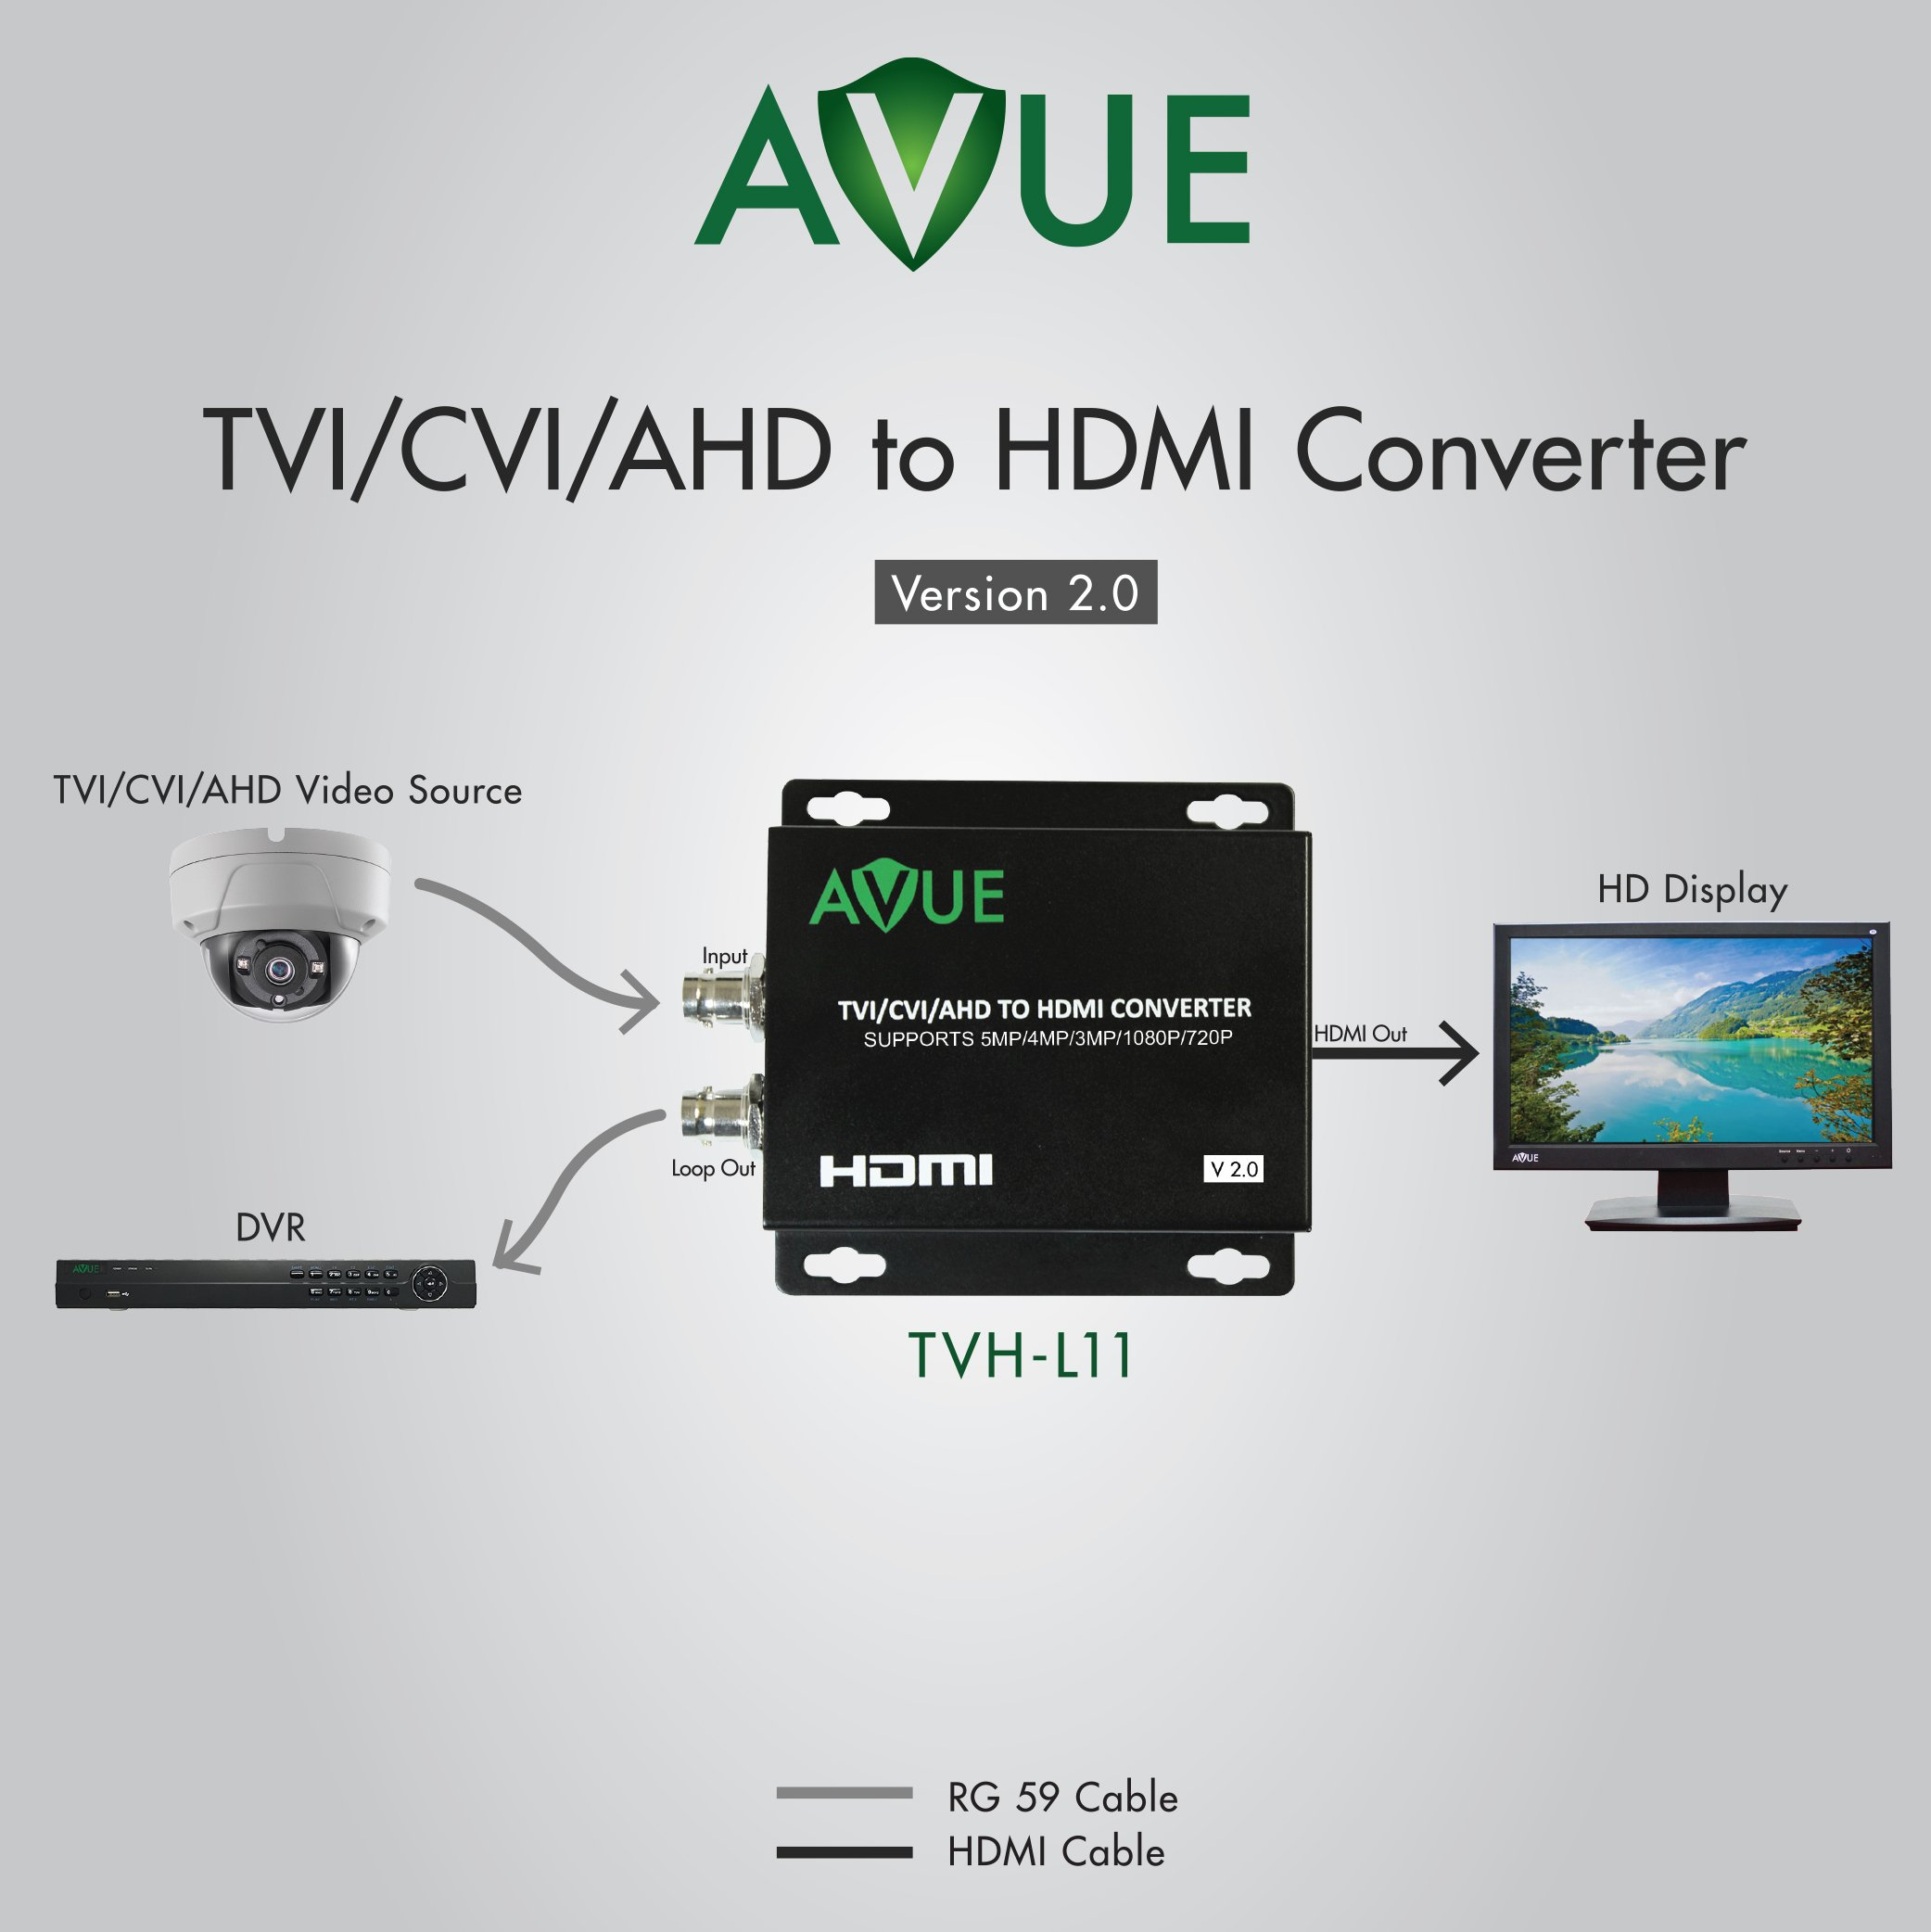 AVUE TVH-L11 TVI/CVI/AHD to HDMI Converter V2.0 Supports 5MP(TVI/AHD), 4MP, 3MP, 1080P and 720P